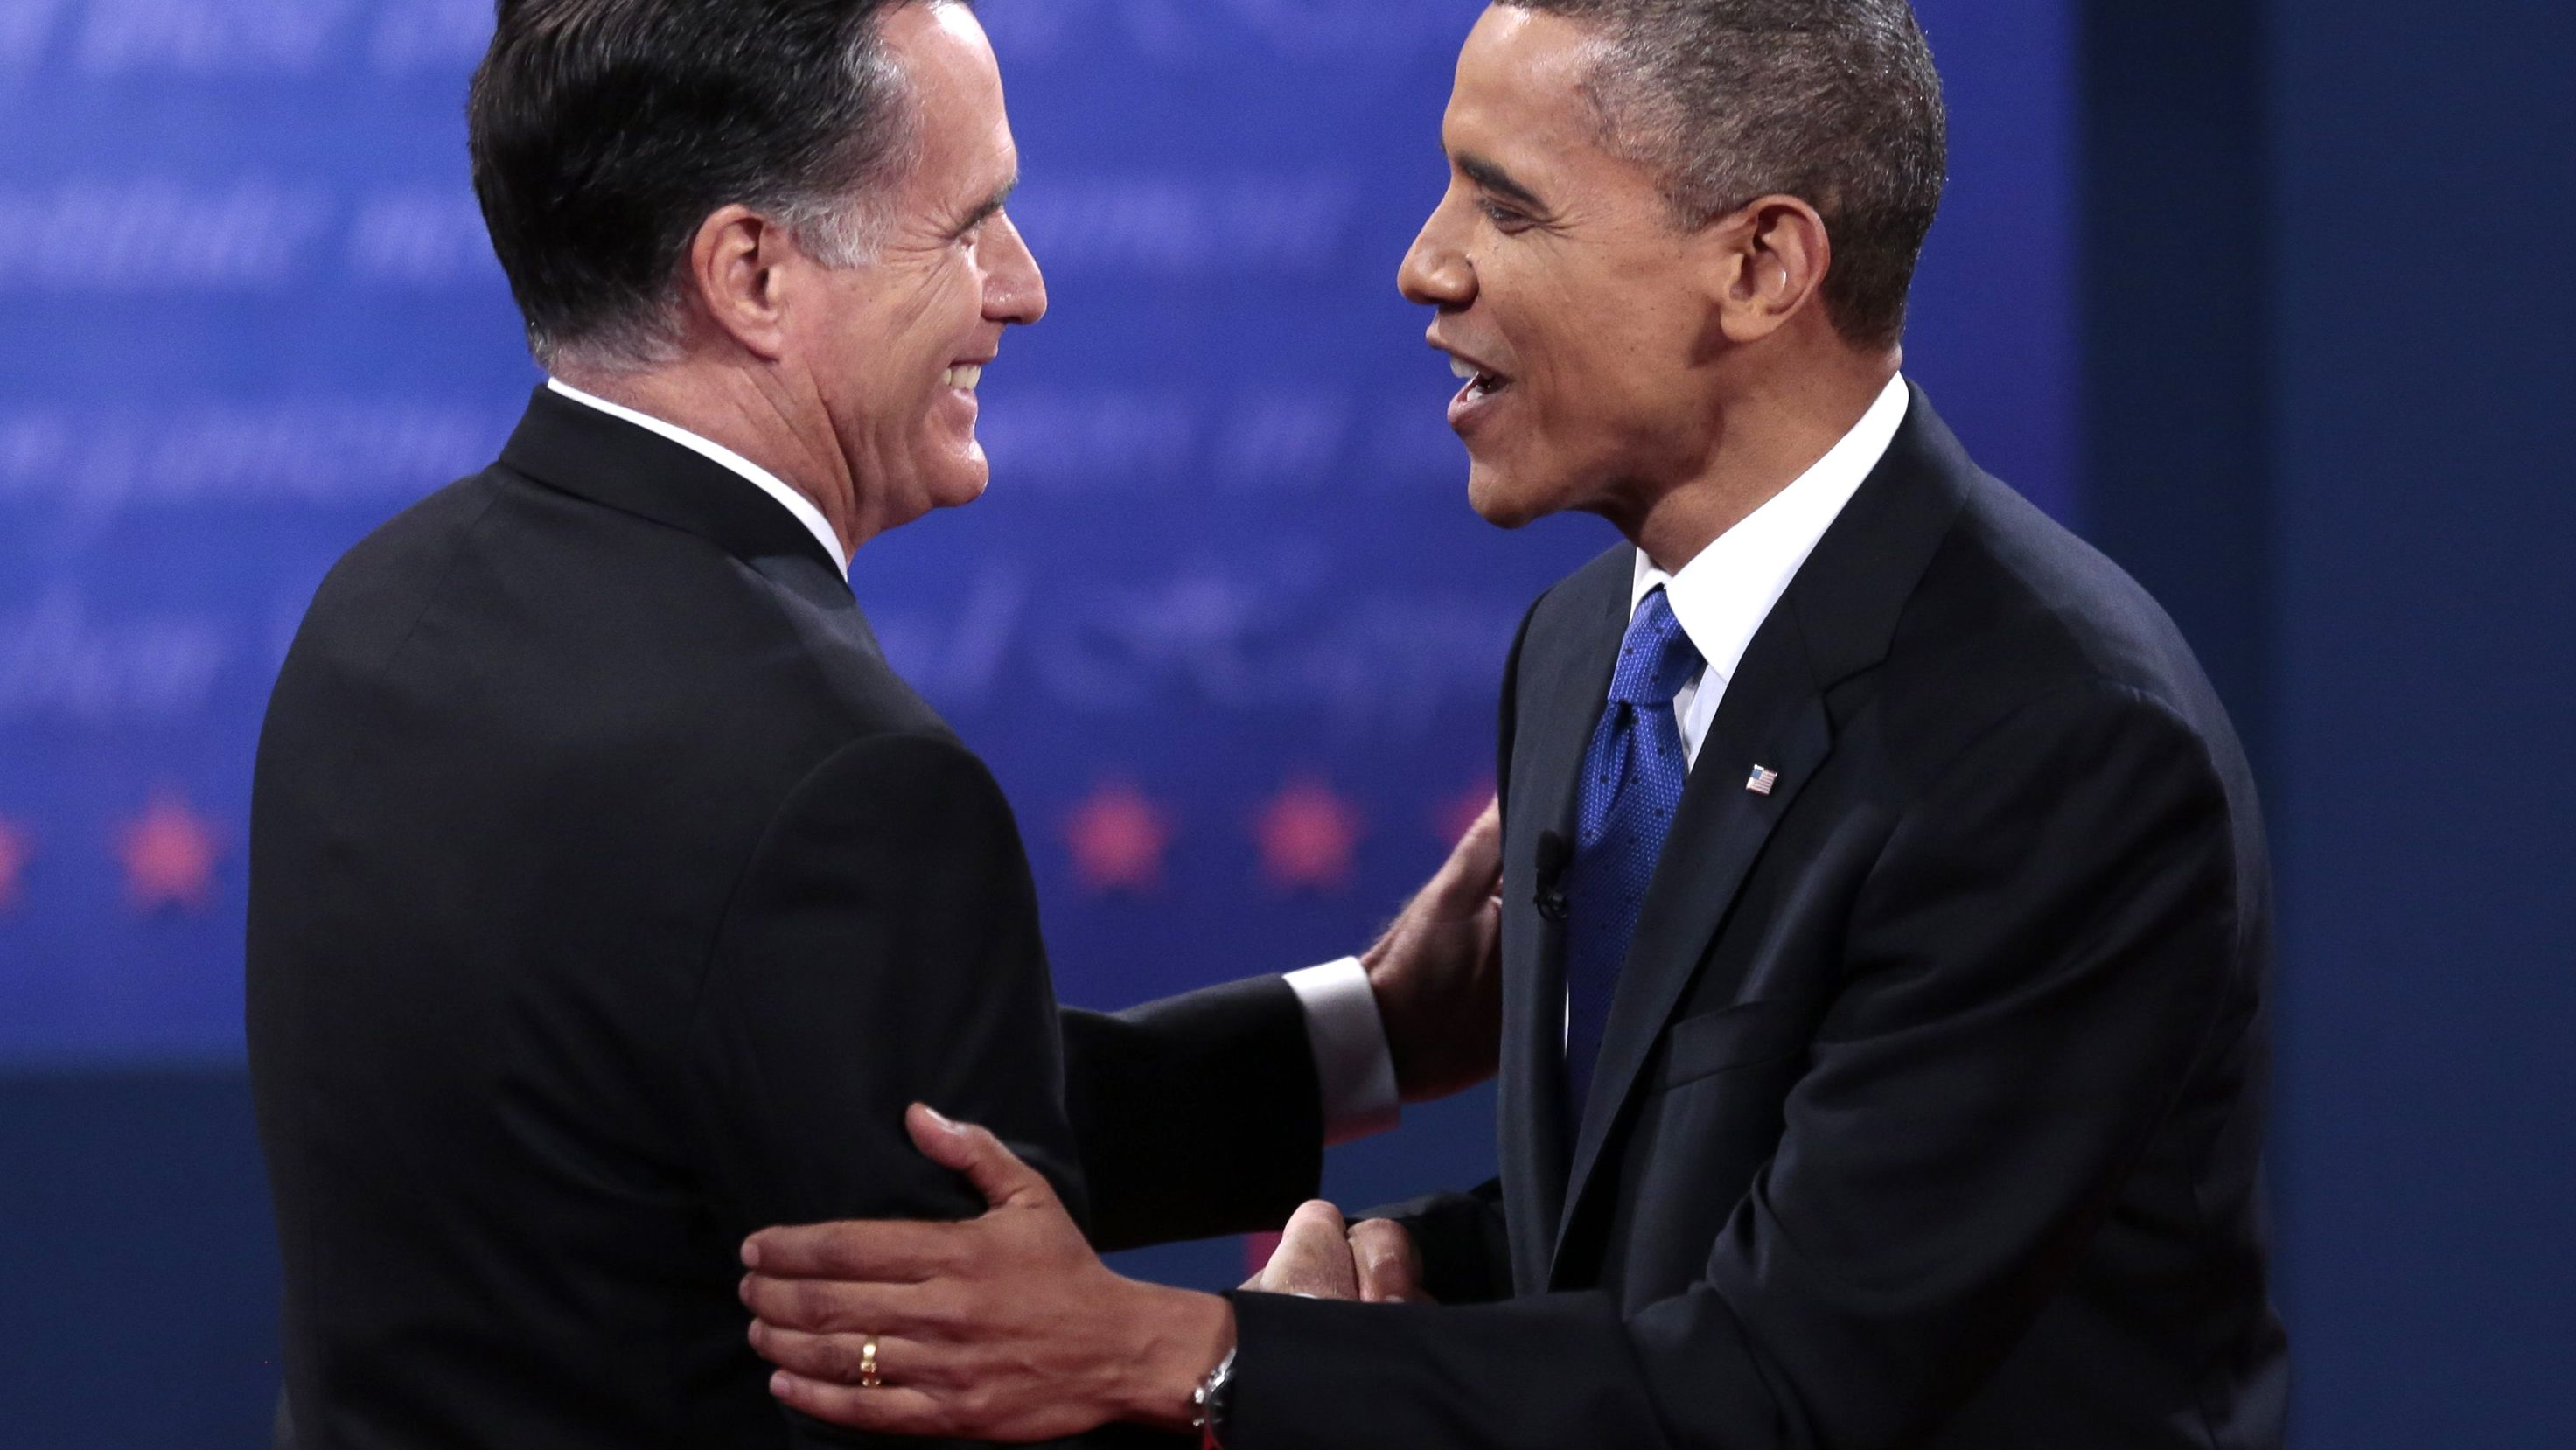 U.S. Republican presidential nominee Romney and U.S. President Obama shake hands at the conclusion of the final U.S. presidential debate in Boca Raton